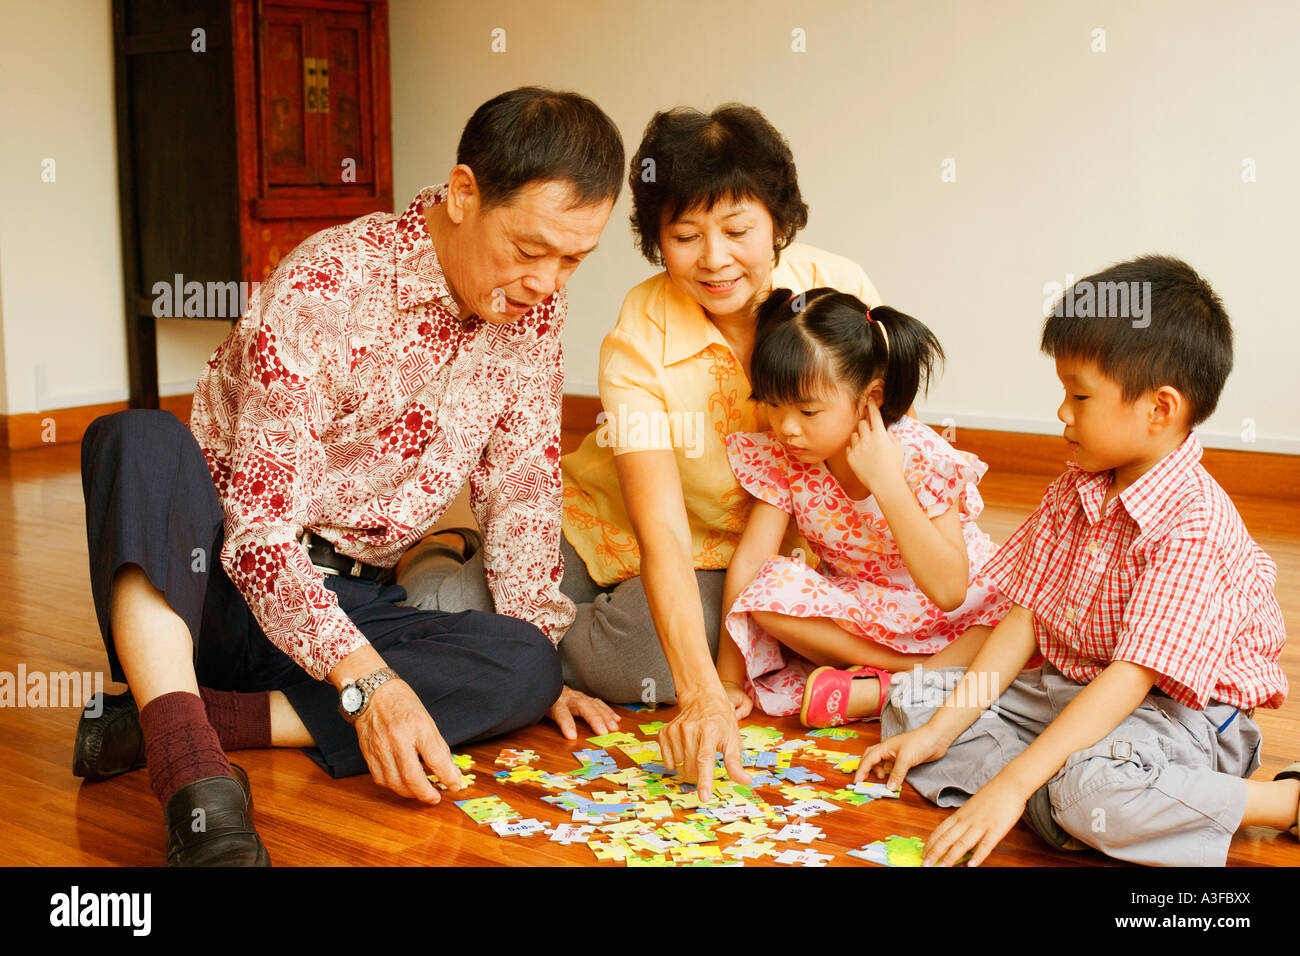 Boy with a girl and their grandparents playing with a jigsaw puzzle - Stock Image